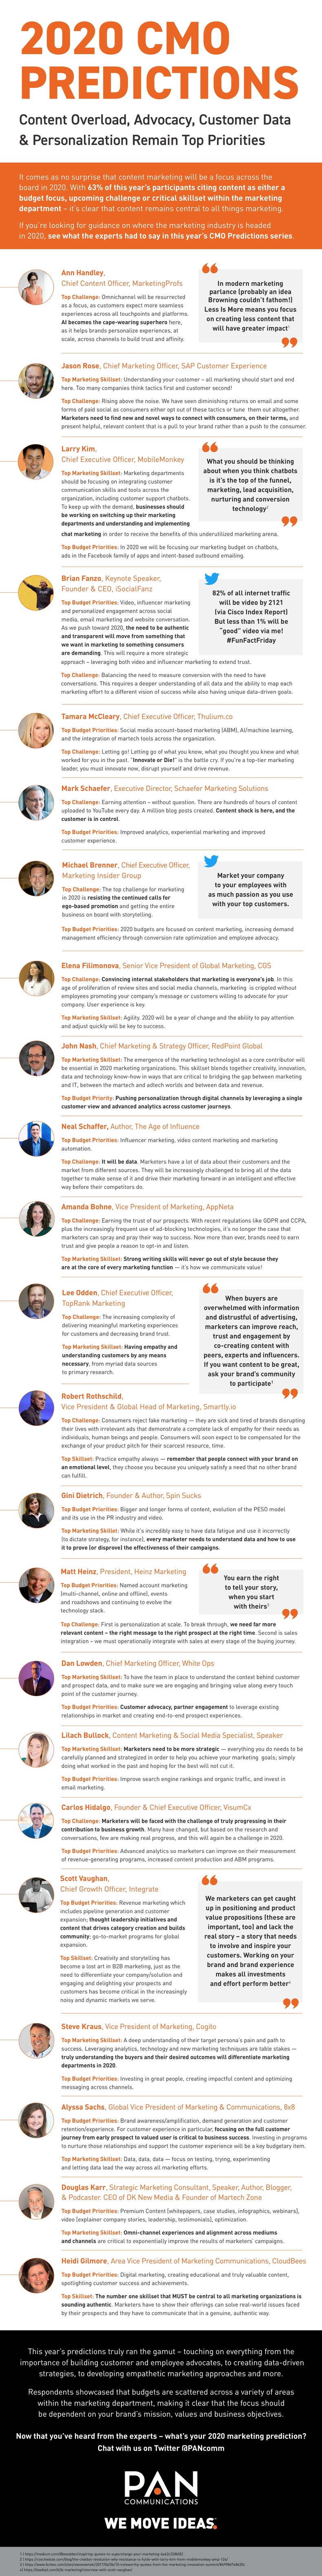 Marketing Strategy - 2020 CMO Predictions From Marketing Influencers [Infographic] : MarketingProfs Article 1